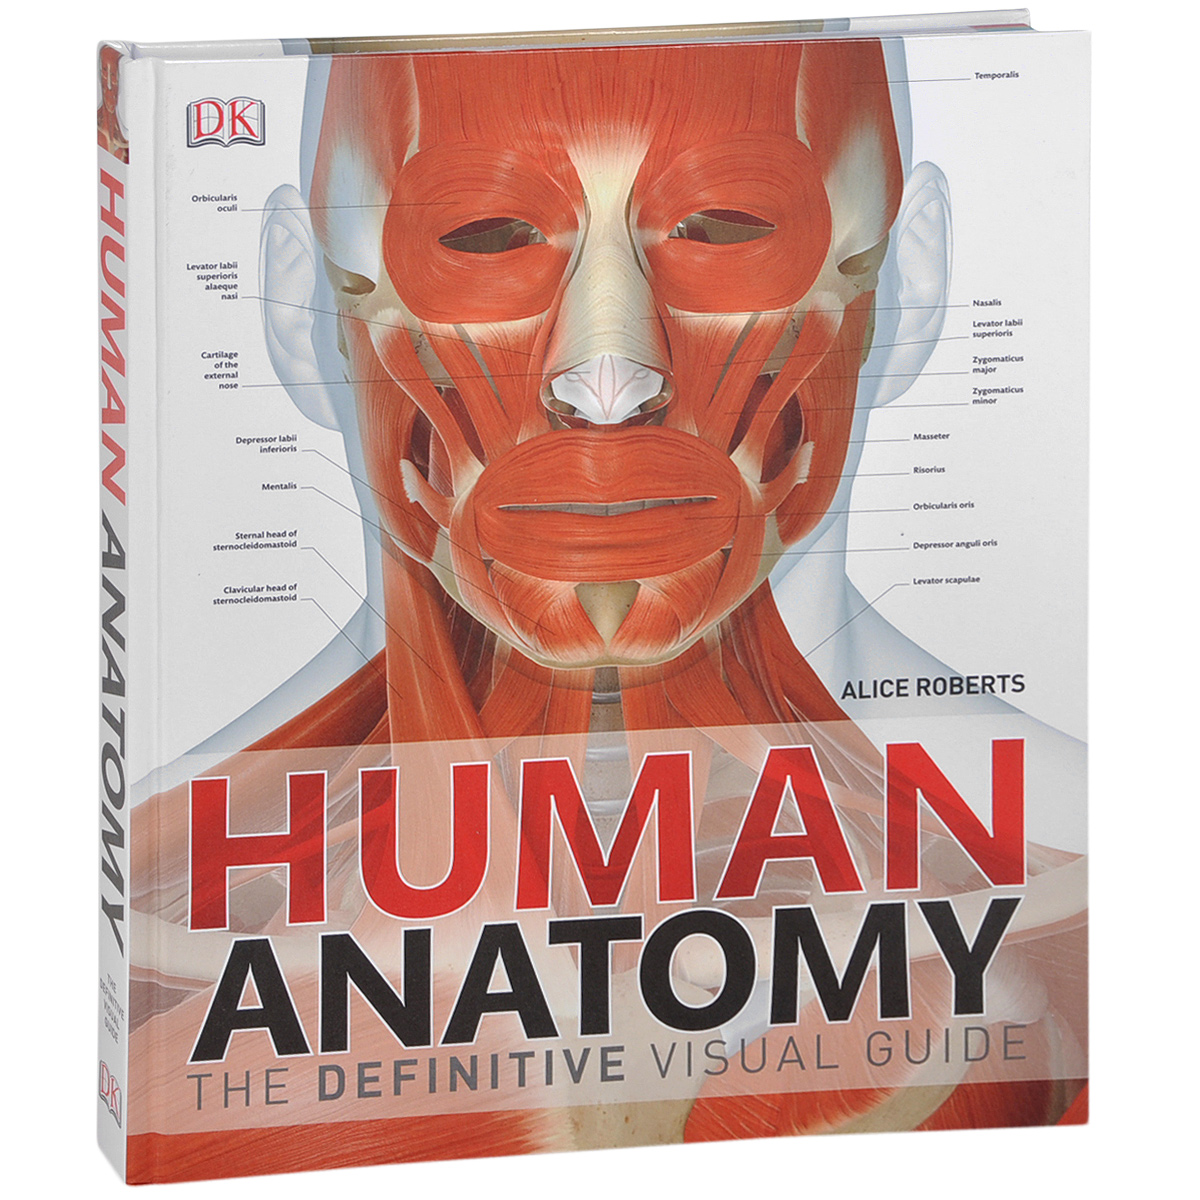 Human Anatomy: The Definitive Visual Guide anatomy of a disappearance